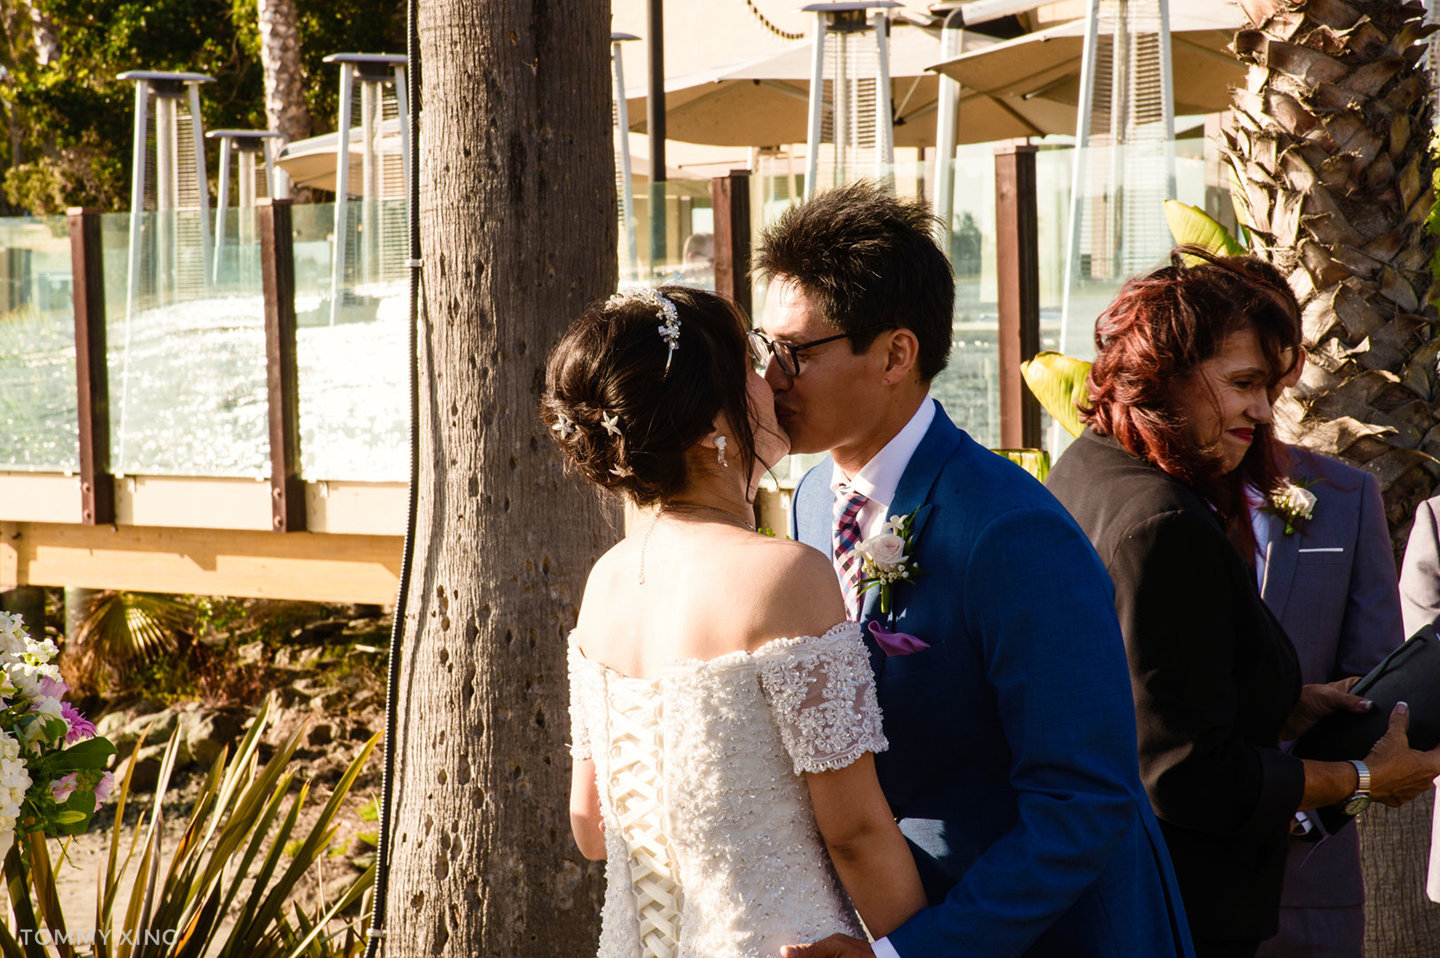 Paradise Point Resort Wedding Xiaolu & Bin San Diego 圣地亚哥婚礼摄影跟拍 Tommy Xing Photography 洛杉矶婚礼婚纱照摄影师 167.jpg